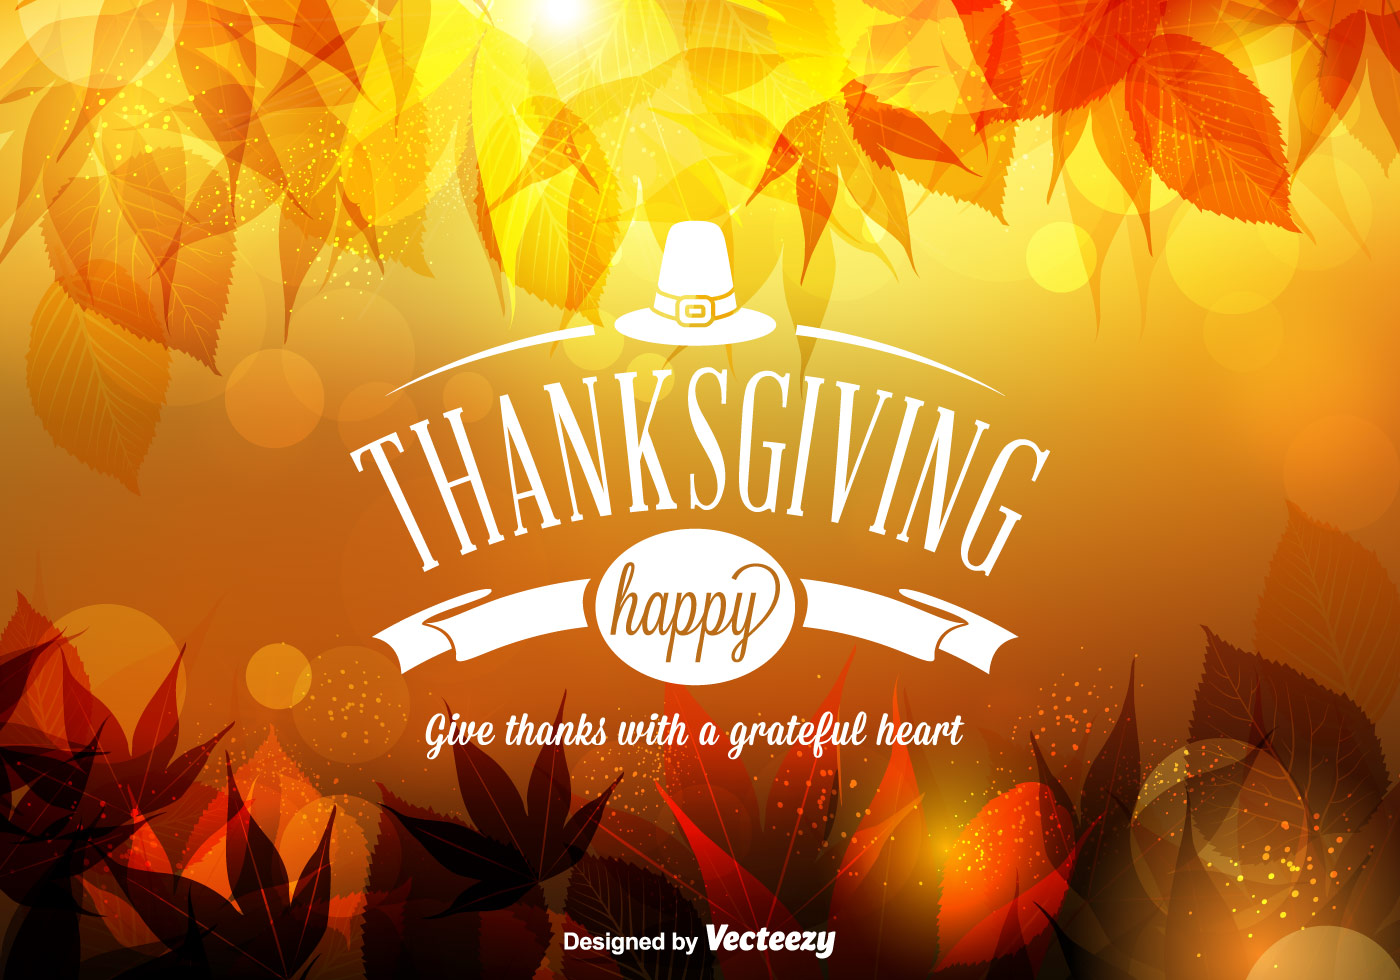 Fall Harvest Wallpaper Christian Vector Happy Thanksgiving Background Download Free